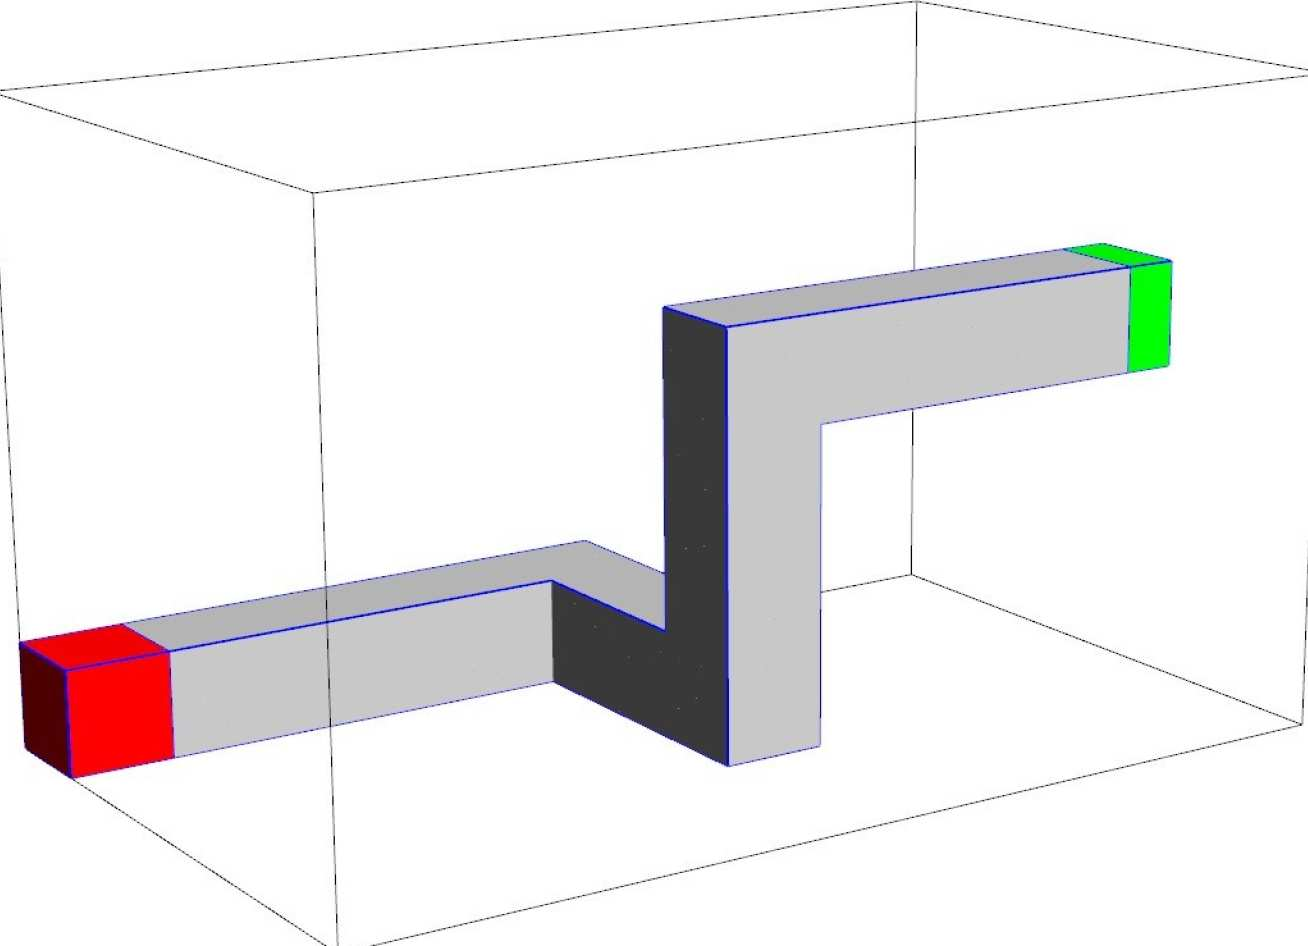 Geometry for a 3D dogleg problem. The duct region is transparent, surrounding by a heavy scattering region, with the bulk a heavy absorber. Red region is source, average flux in green region is goal.